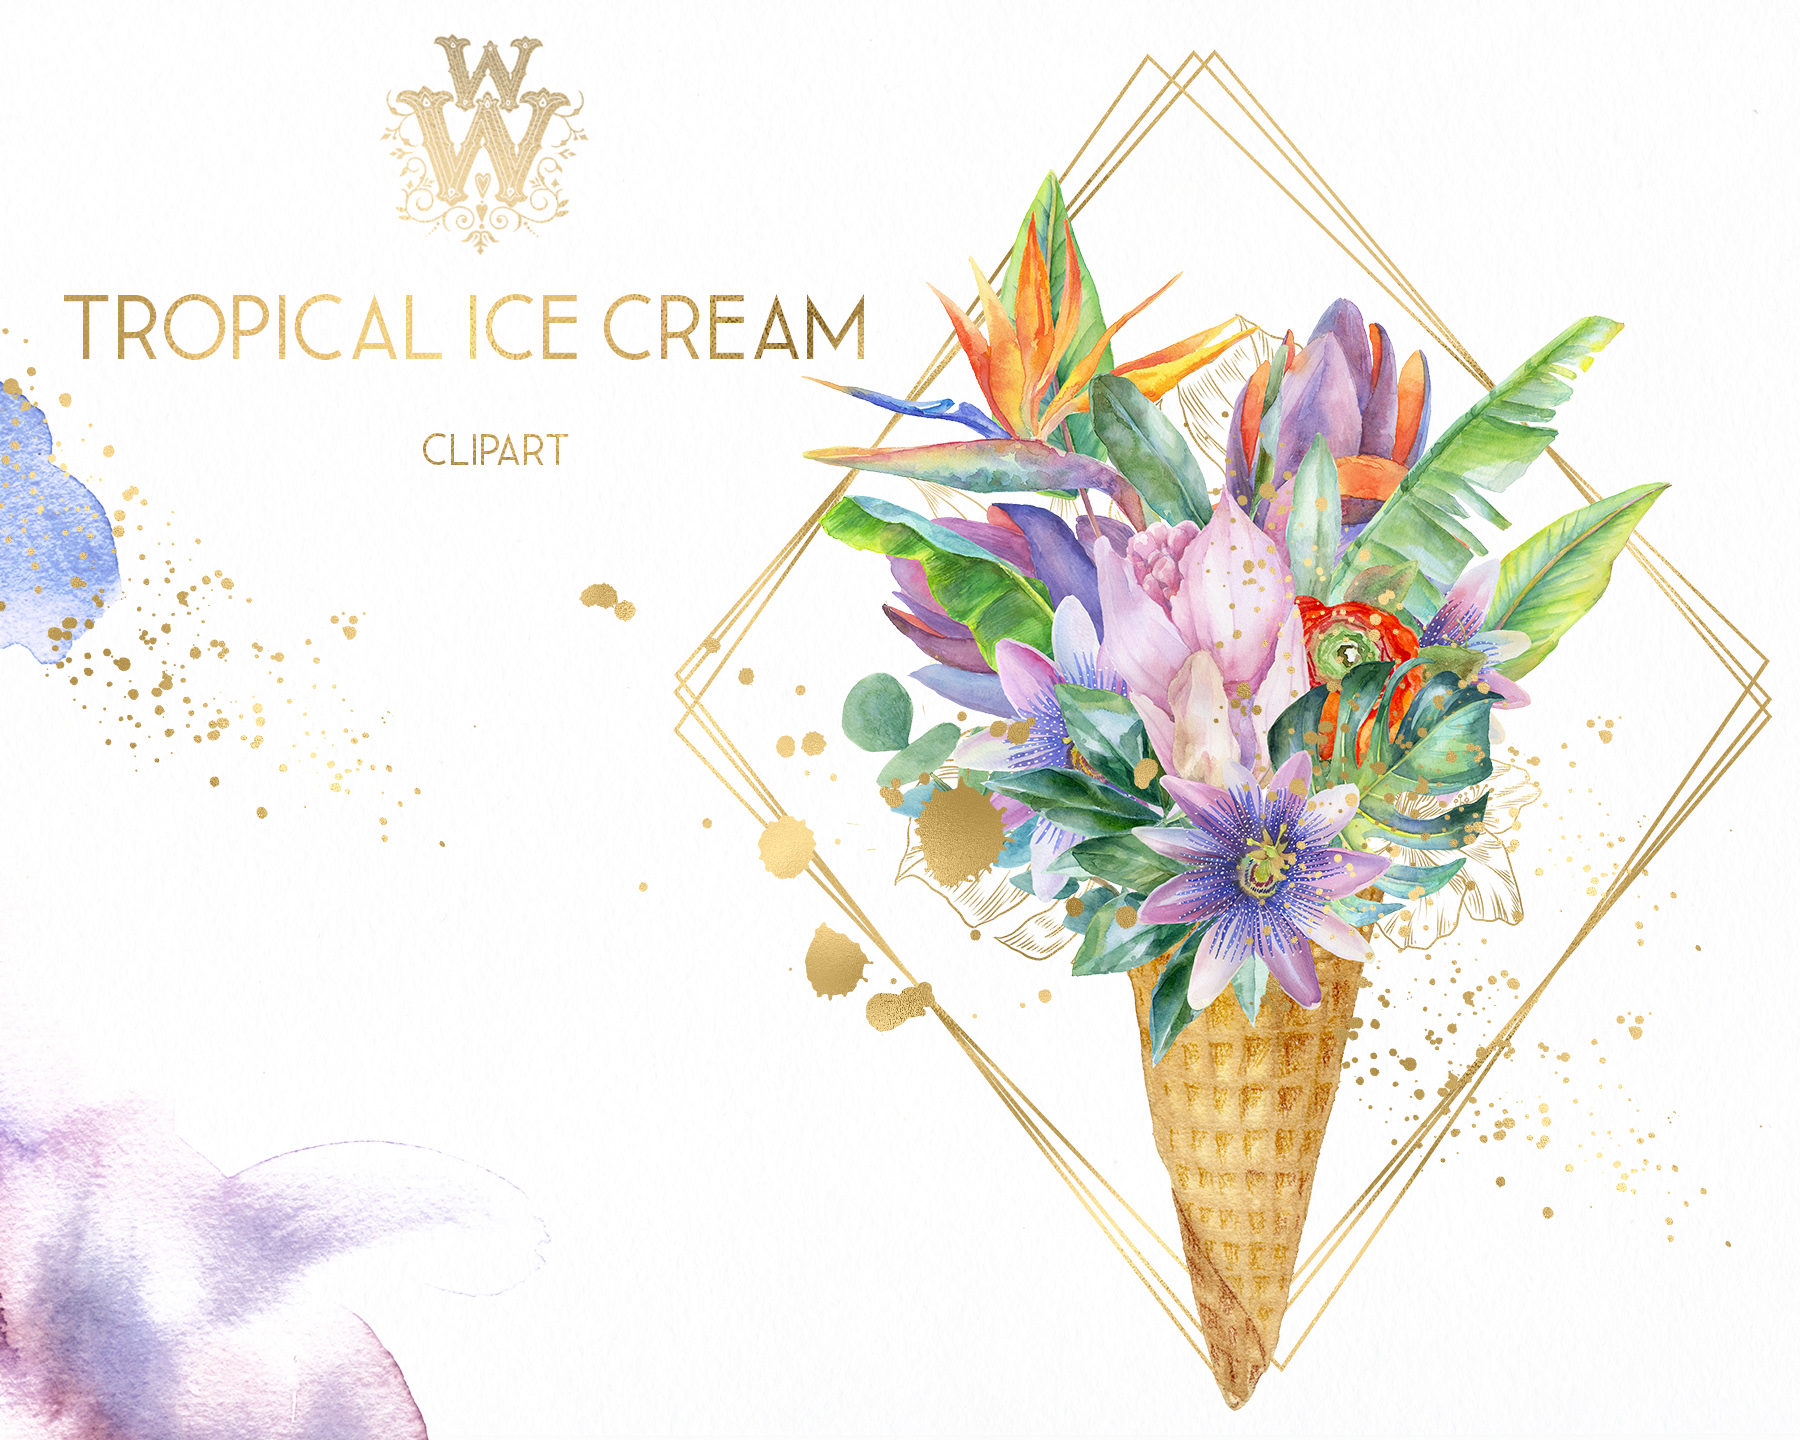 Watercolor summer tropical flower clipart, floral Ice Cream example image 4